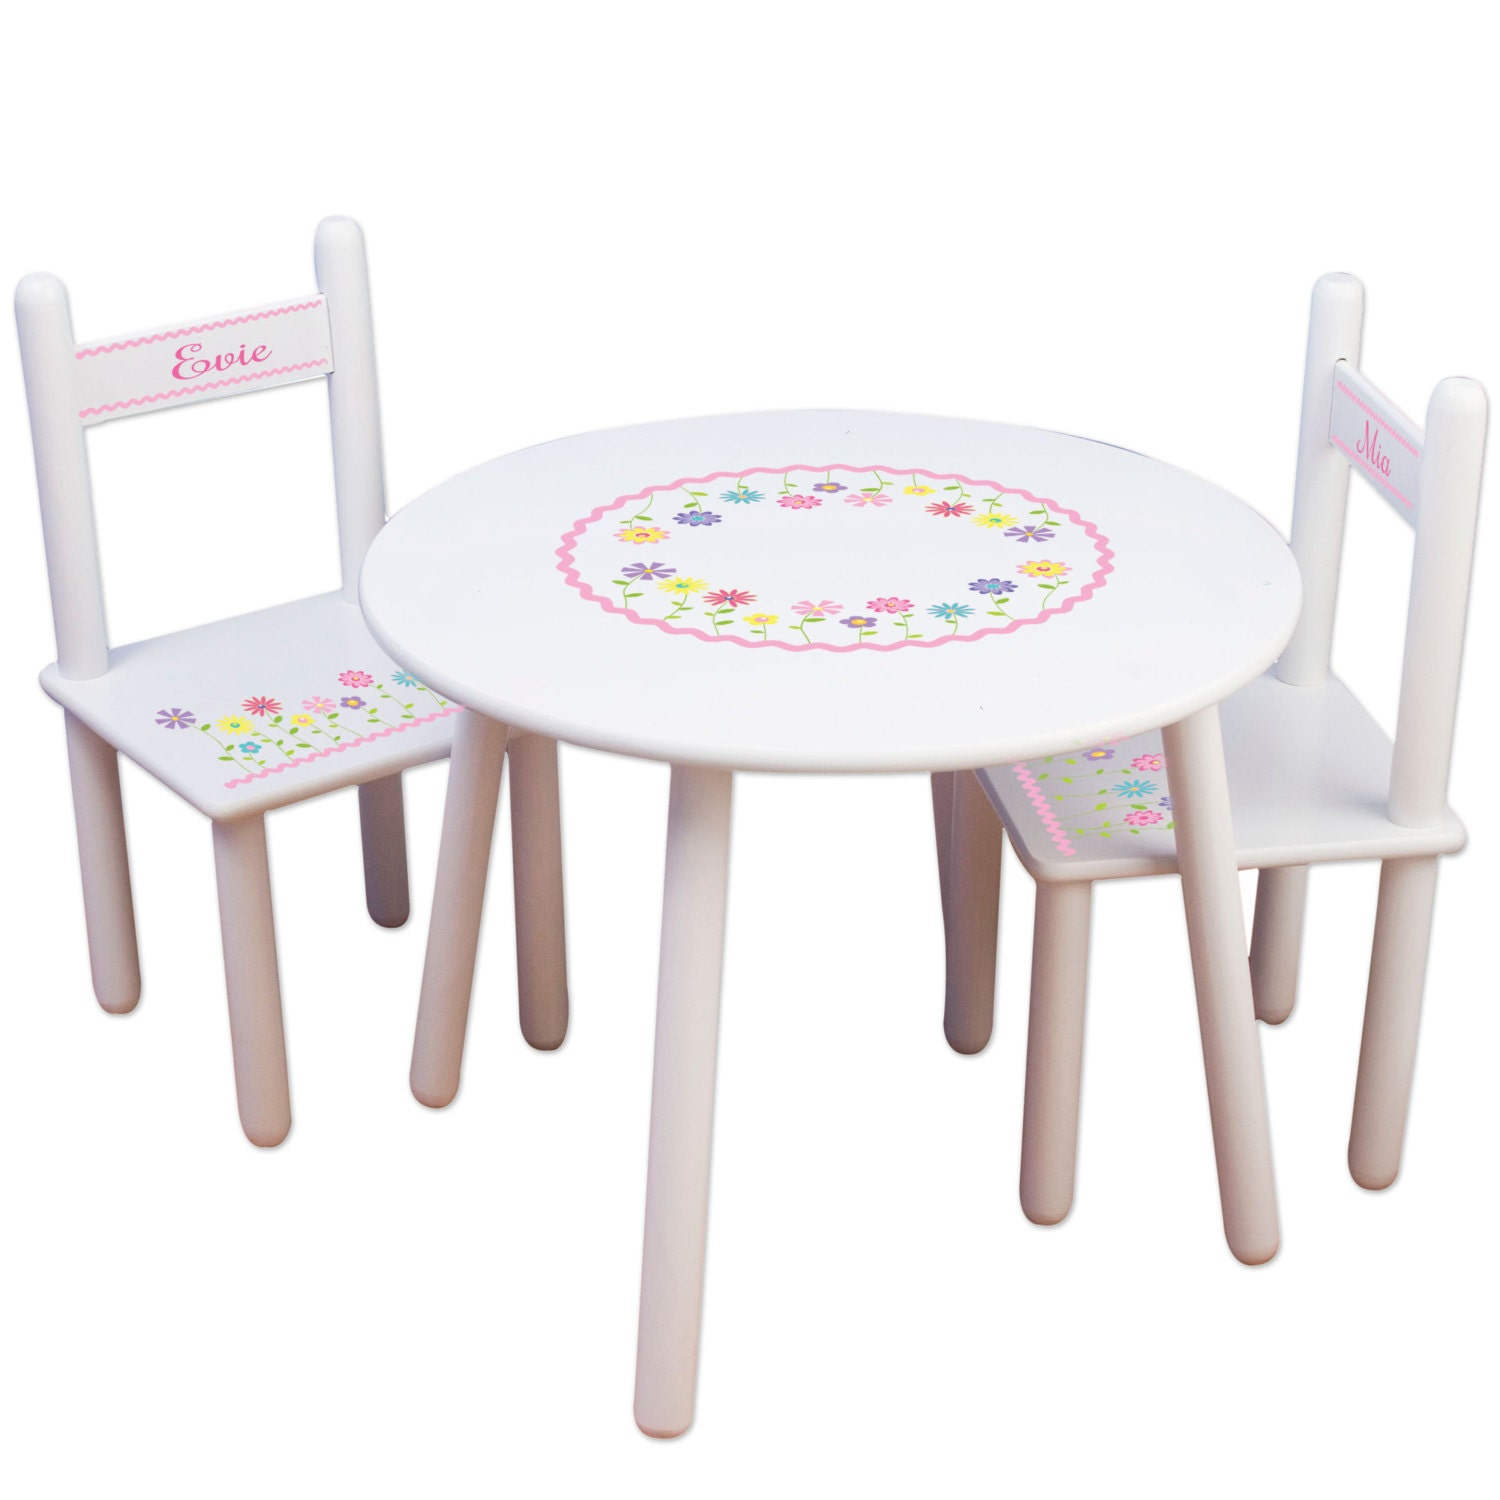 Custom table chairs personalized childrens furniture white for Monogrammed kids chair